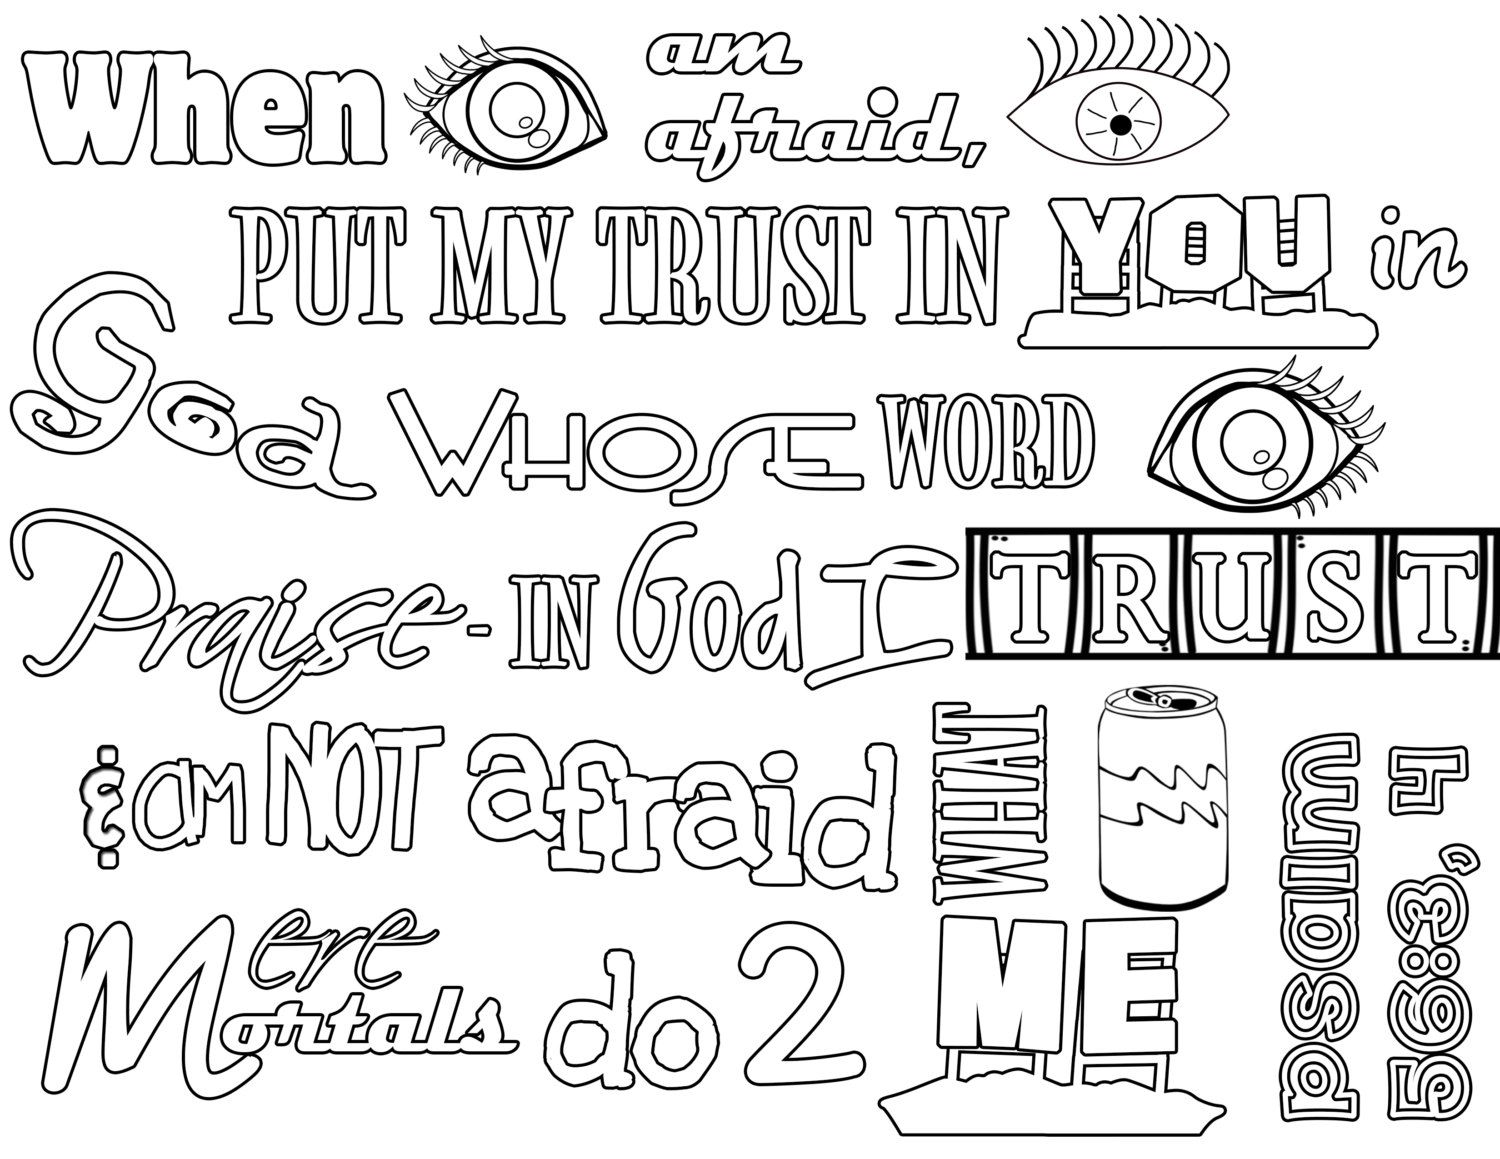 Psalms 56 34 Niv Scripture Coloring Page By